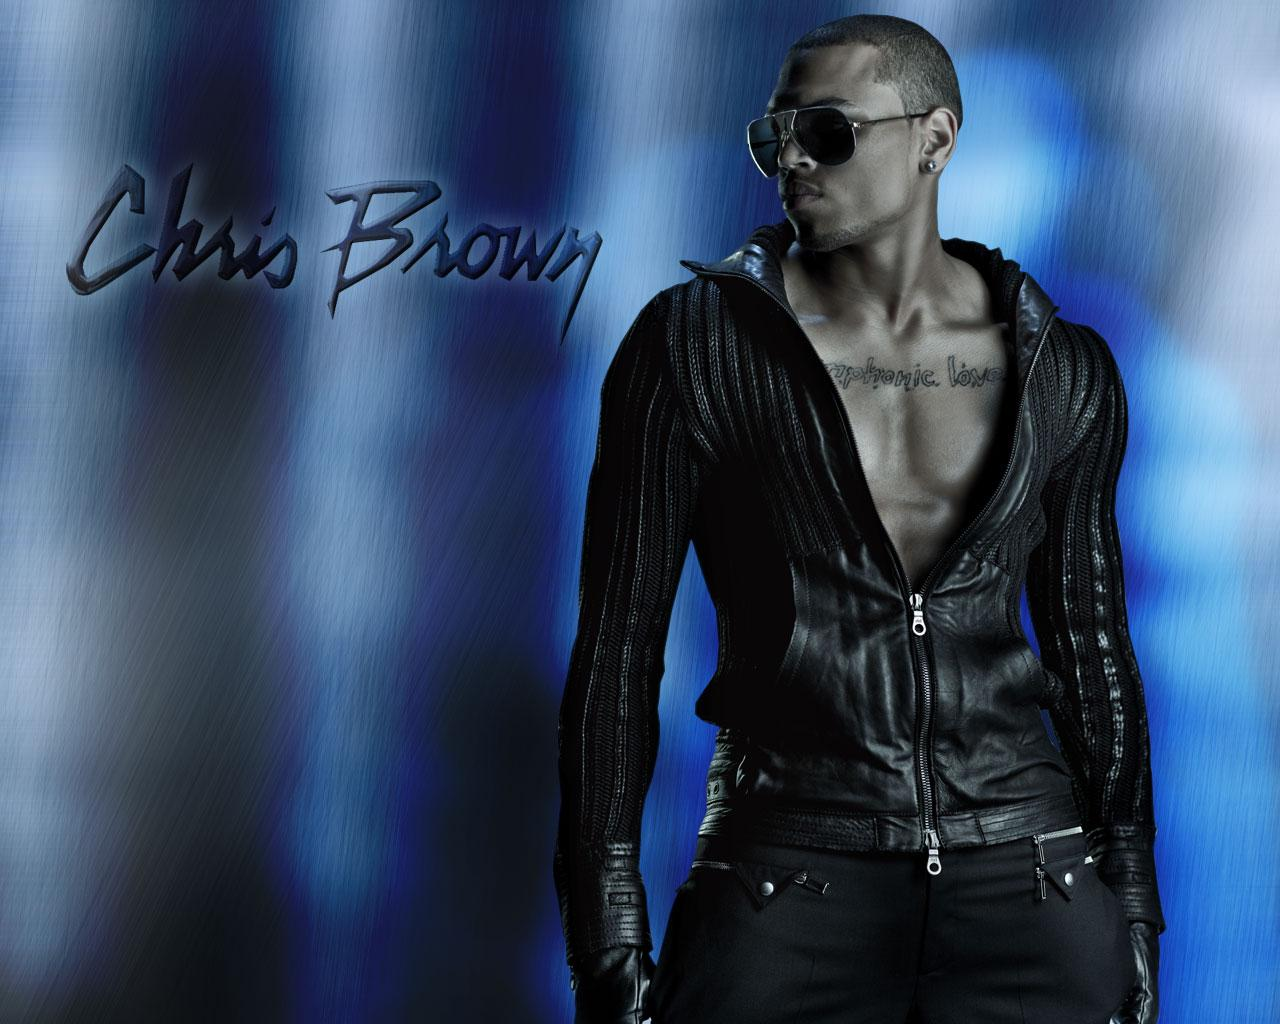 chatter busy chris brown wallpapers